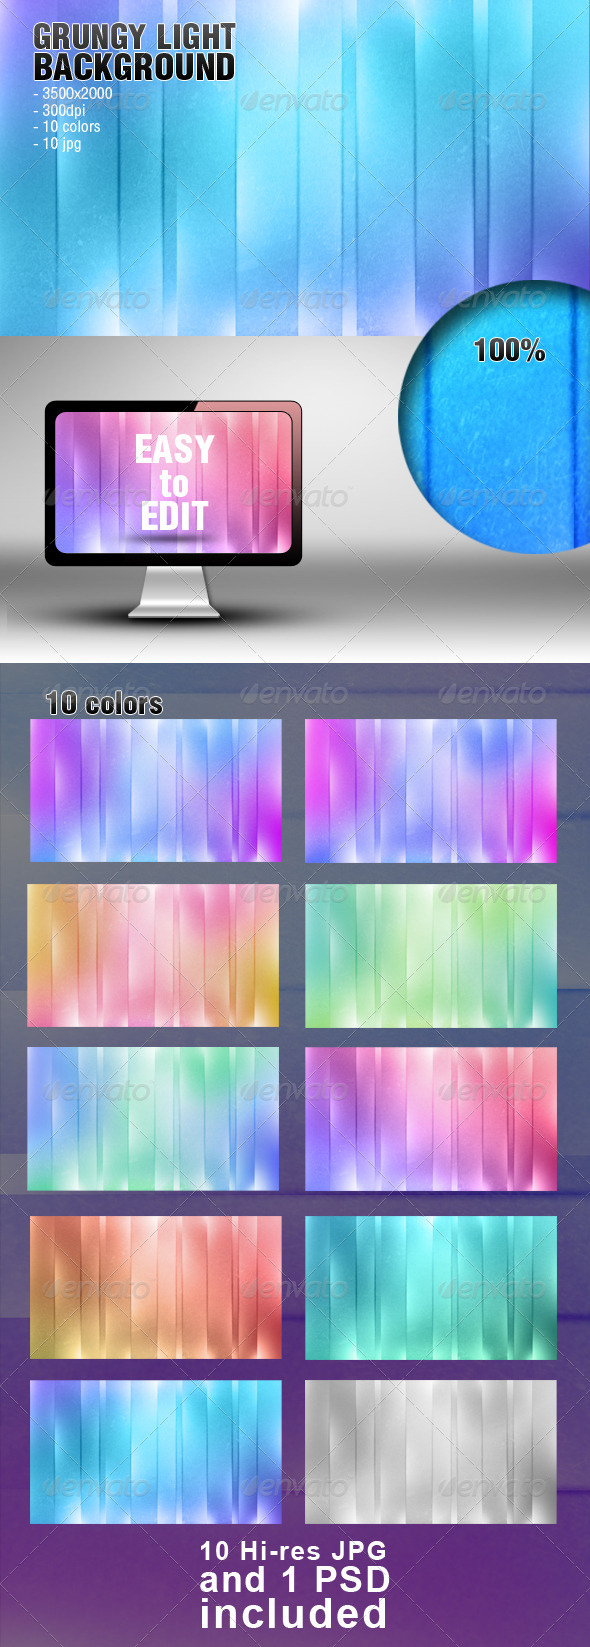 GraphicRiver Grungy Light Background 4467563